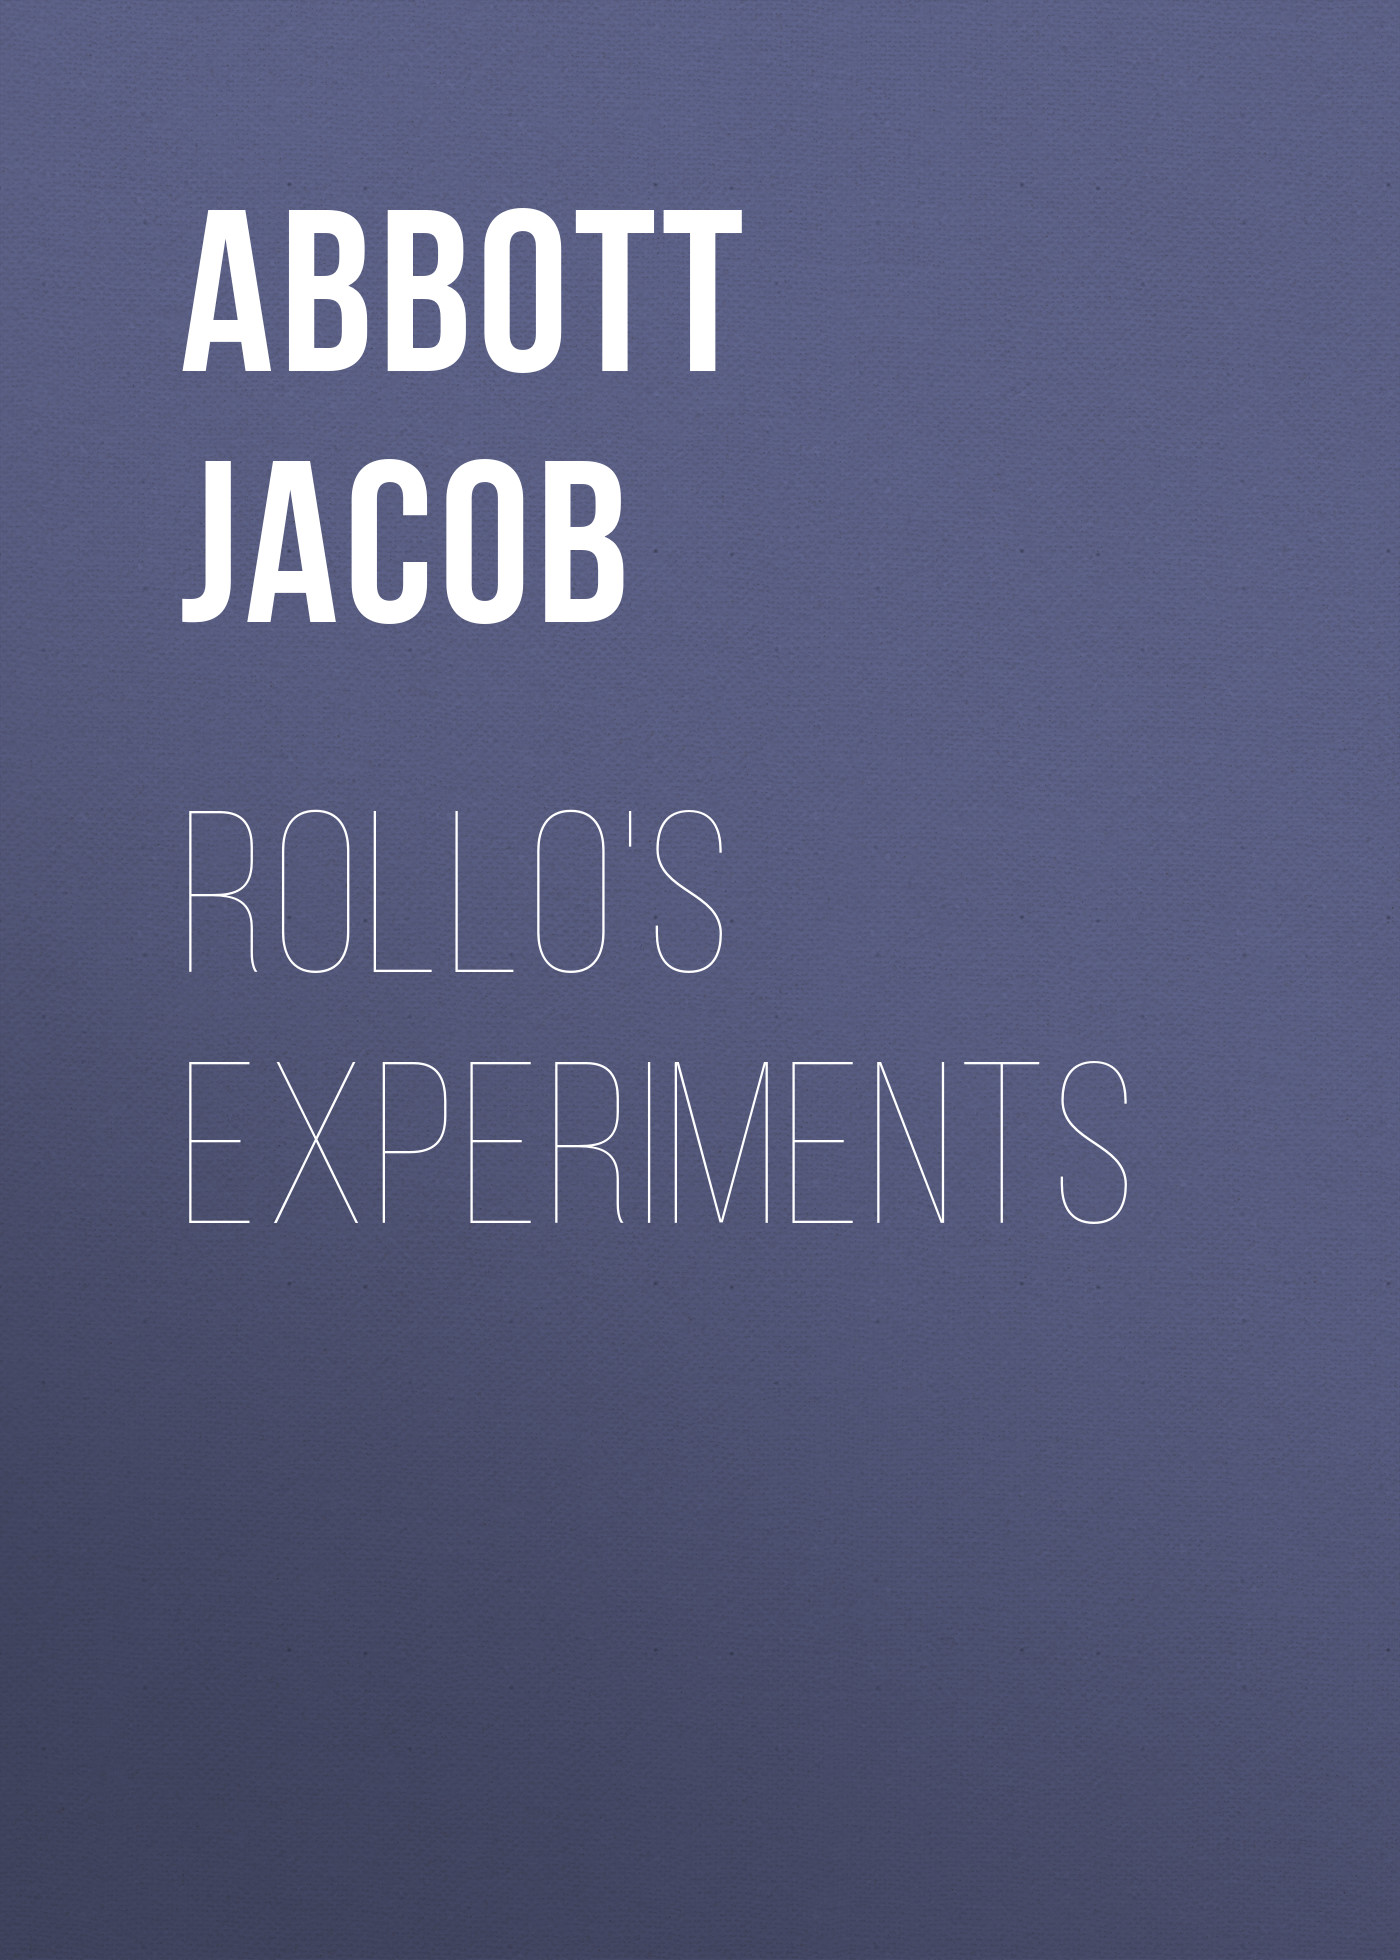 Abbott Jacob Rollo's Experiments